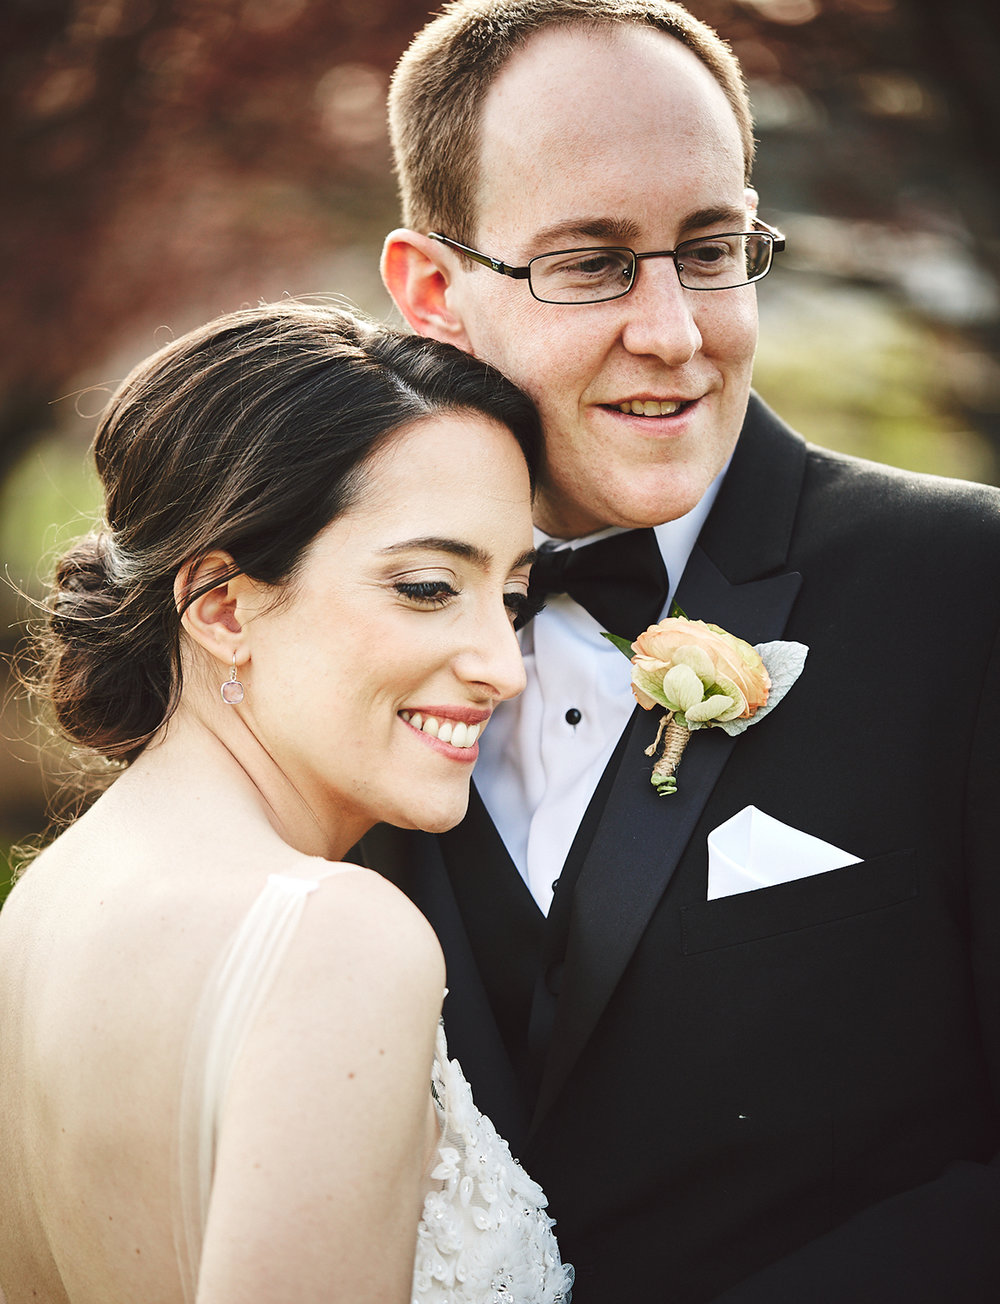 180421_OrangeLawnTennisClubWeddingPhotography_NJWeddingPhotographer_By_BriJohnsonWeddings_0106.jpg